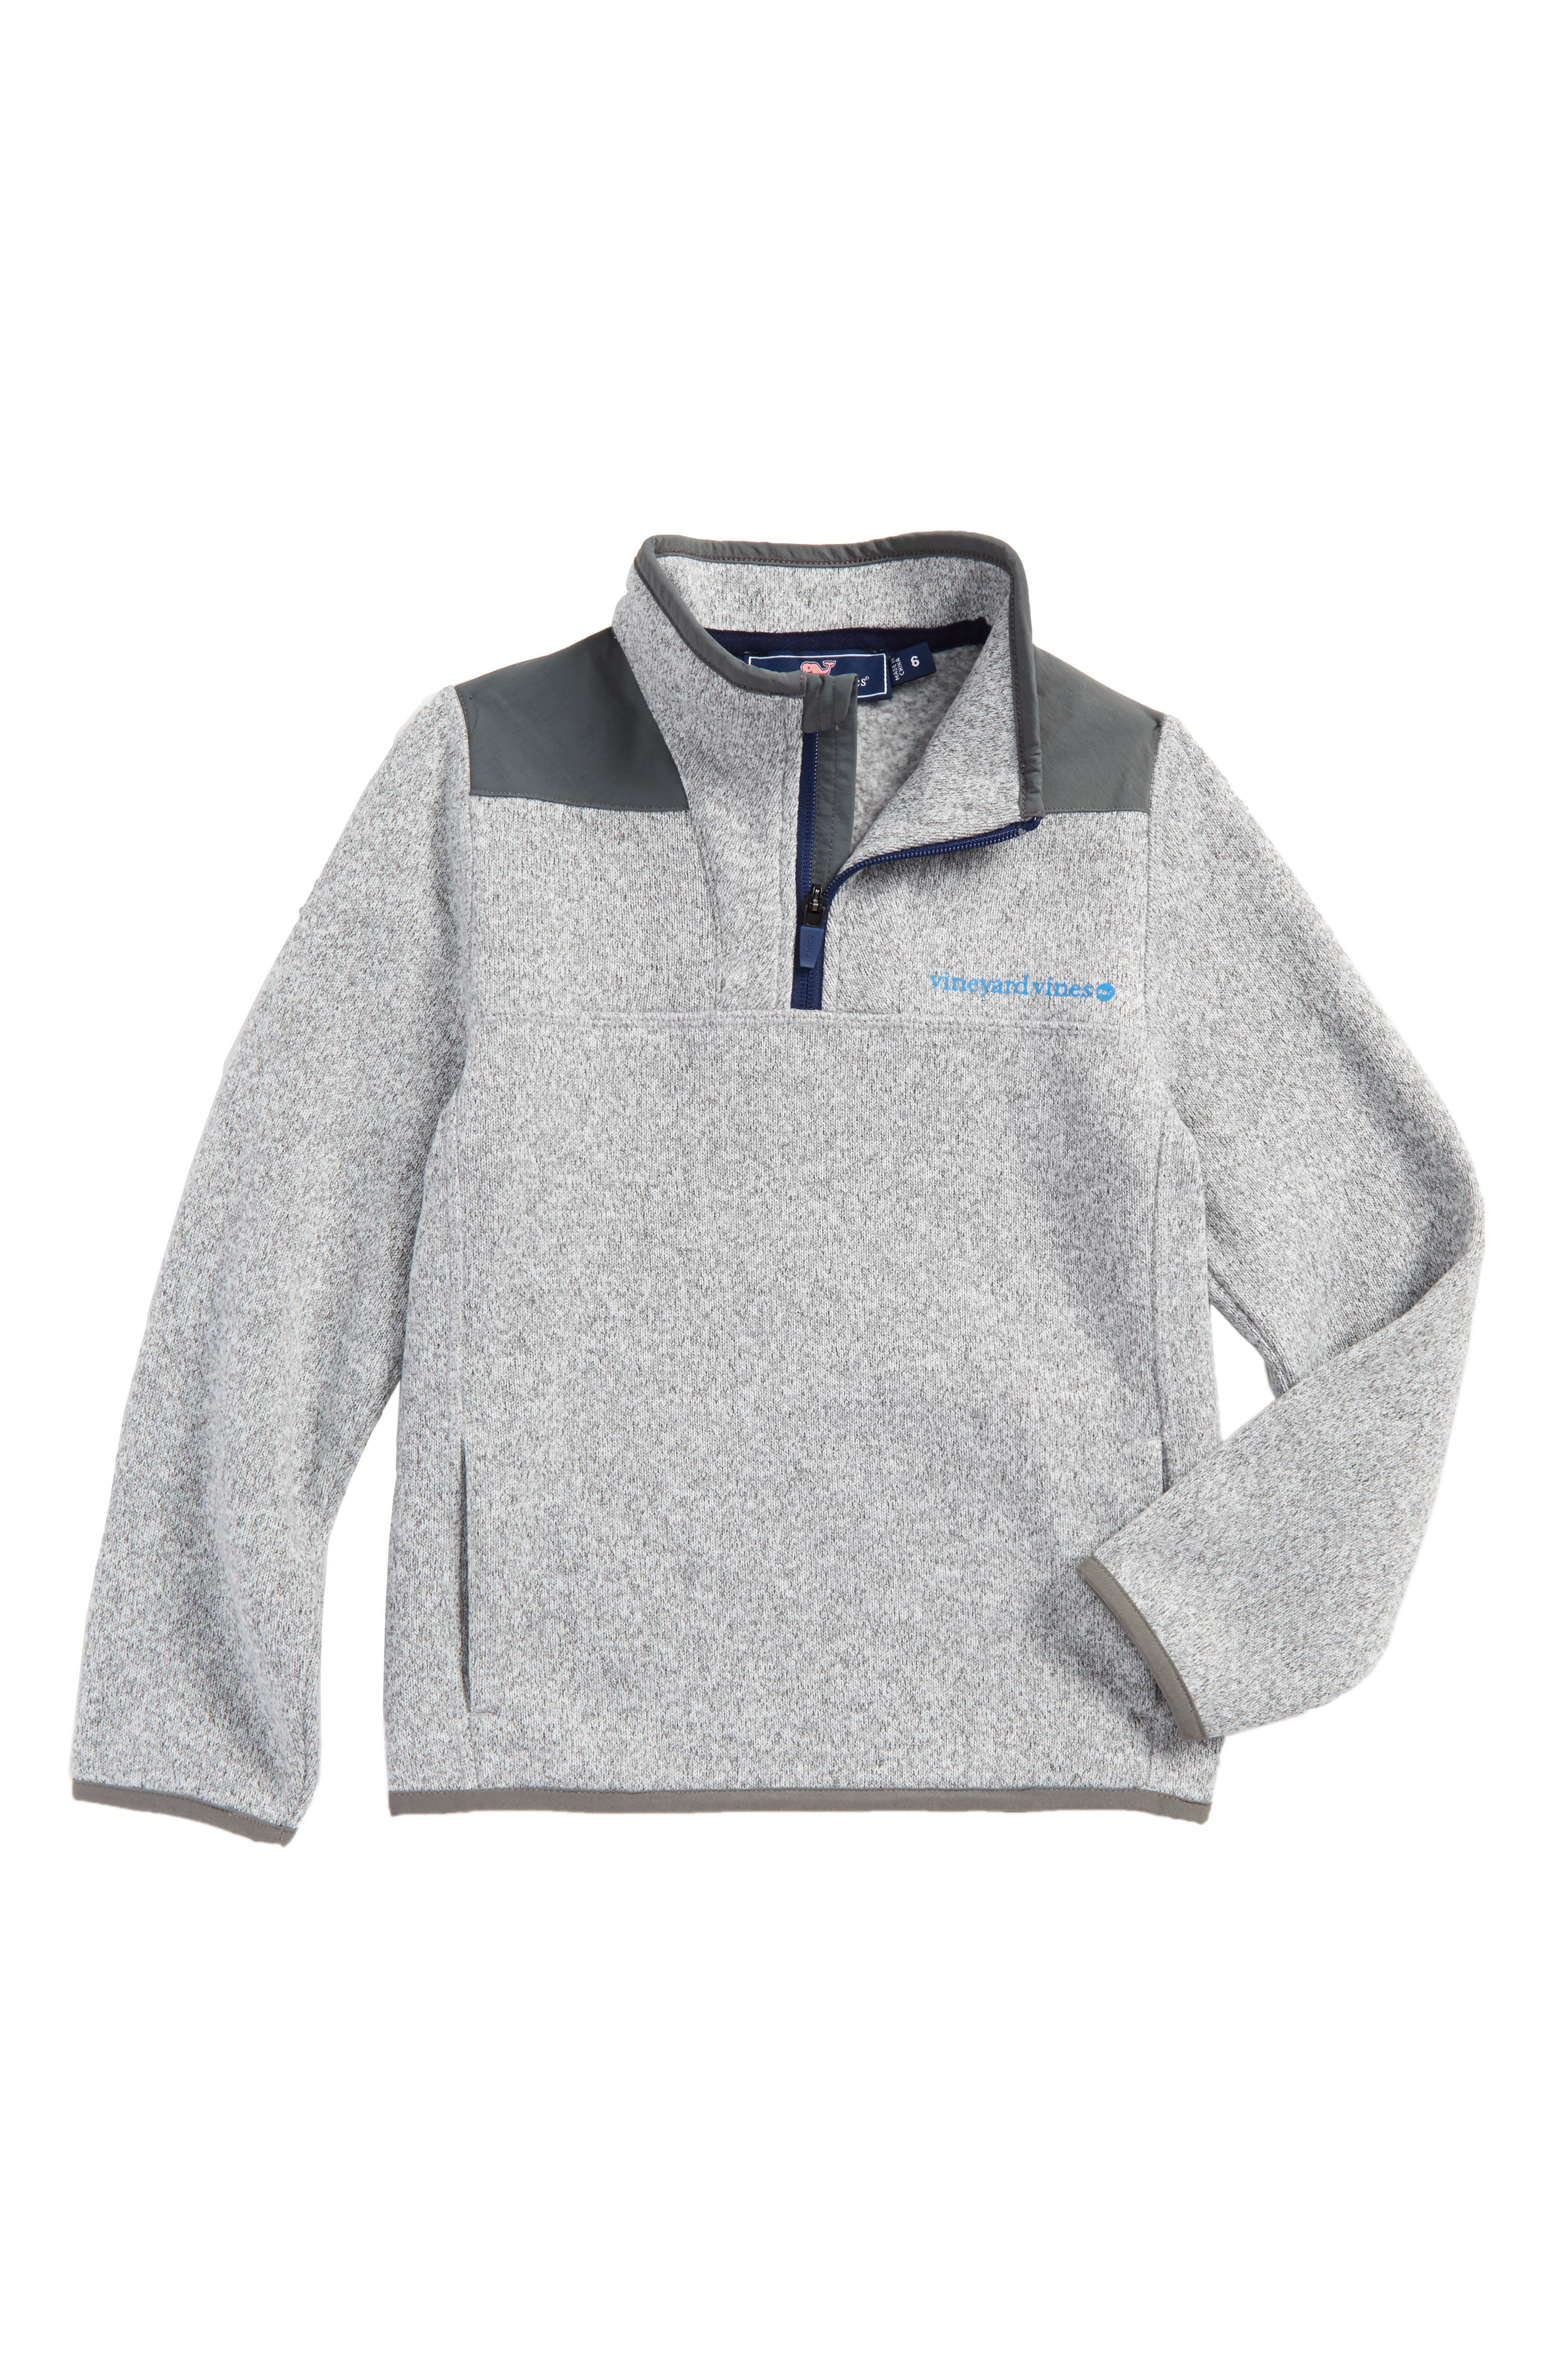 vineyard vines Quarter Zip Sweater (Toddler Boys & Little Boys)